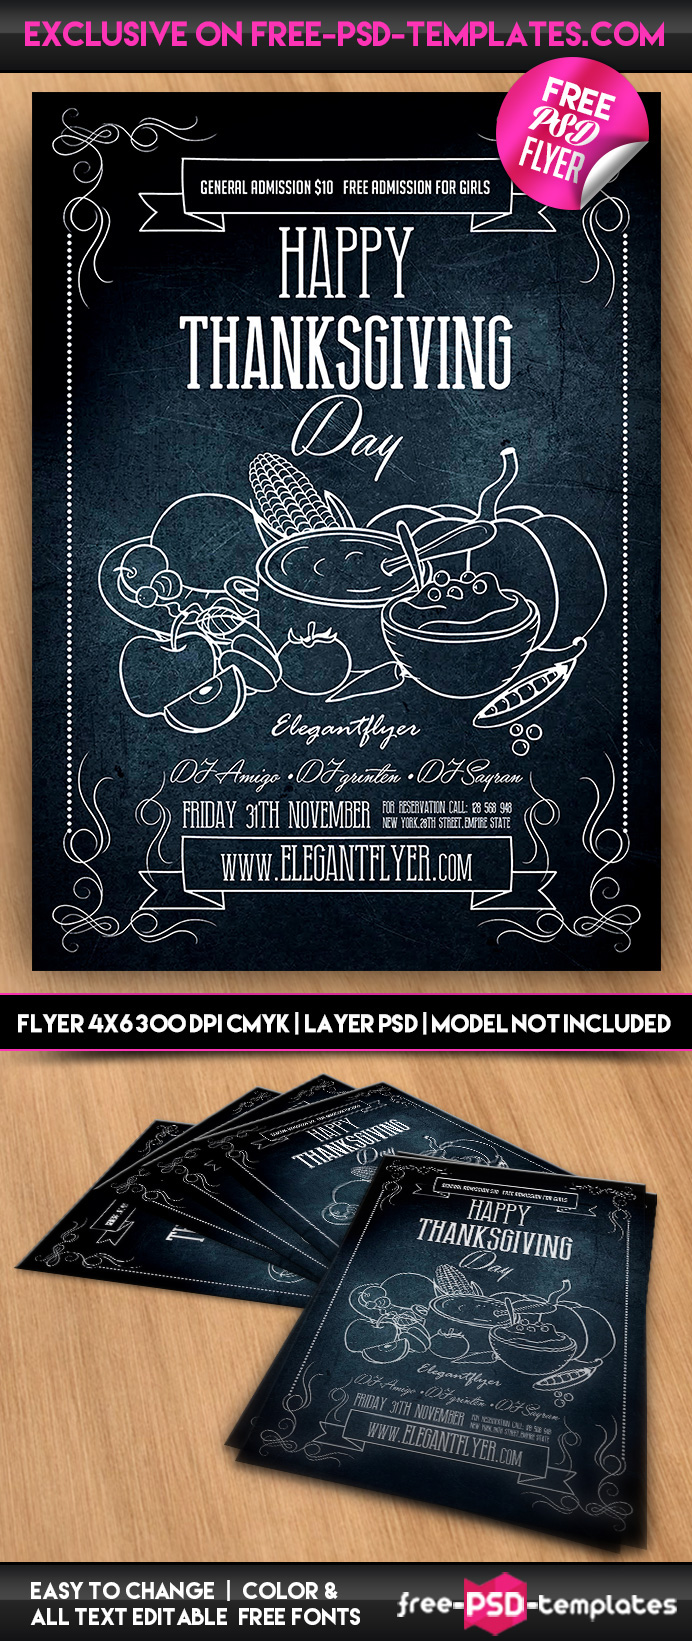 happy thanksgiving psd flyer template on behance do you need luxury and special psd flyer for your events parties or occasions you are welcome to choose this one absolutely psd flyer template was